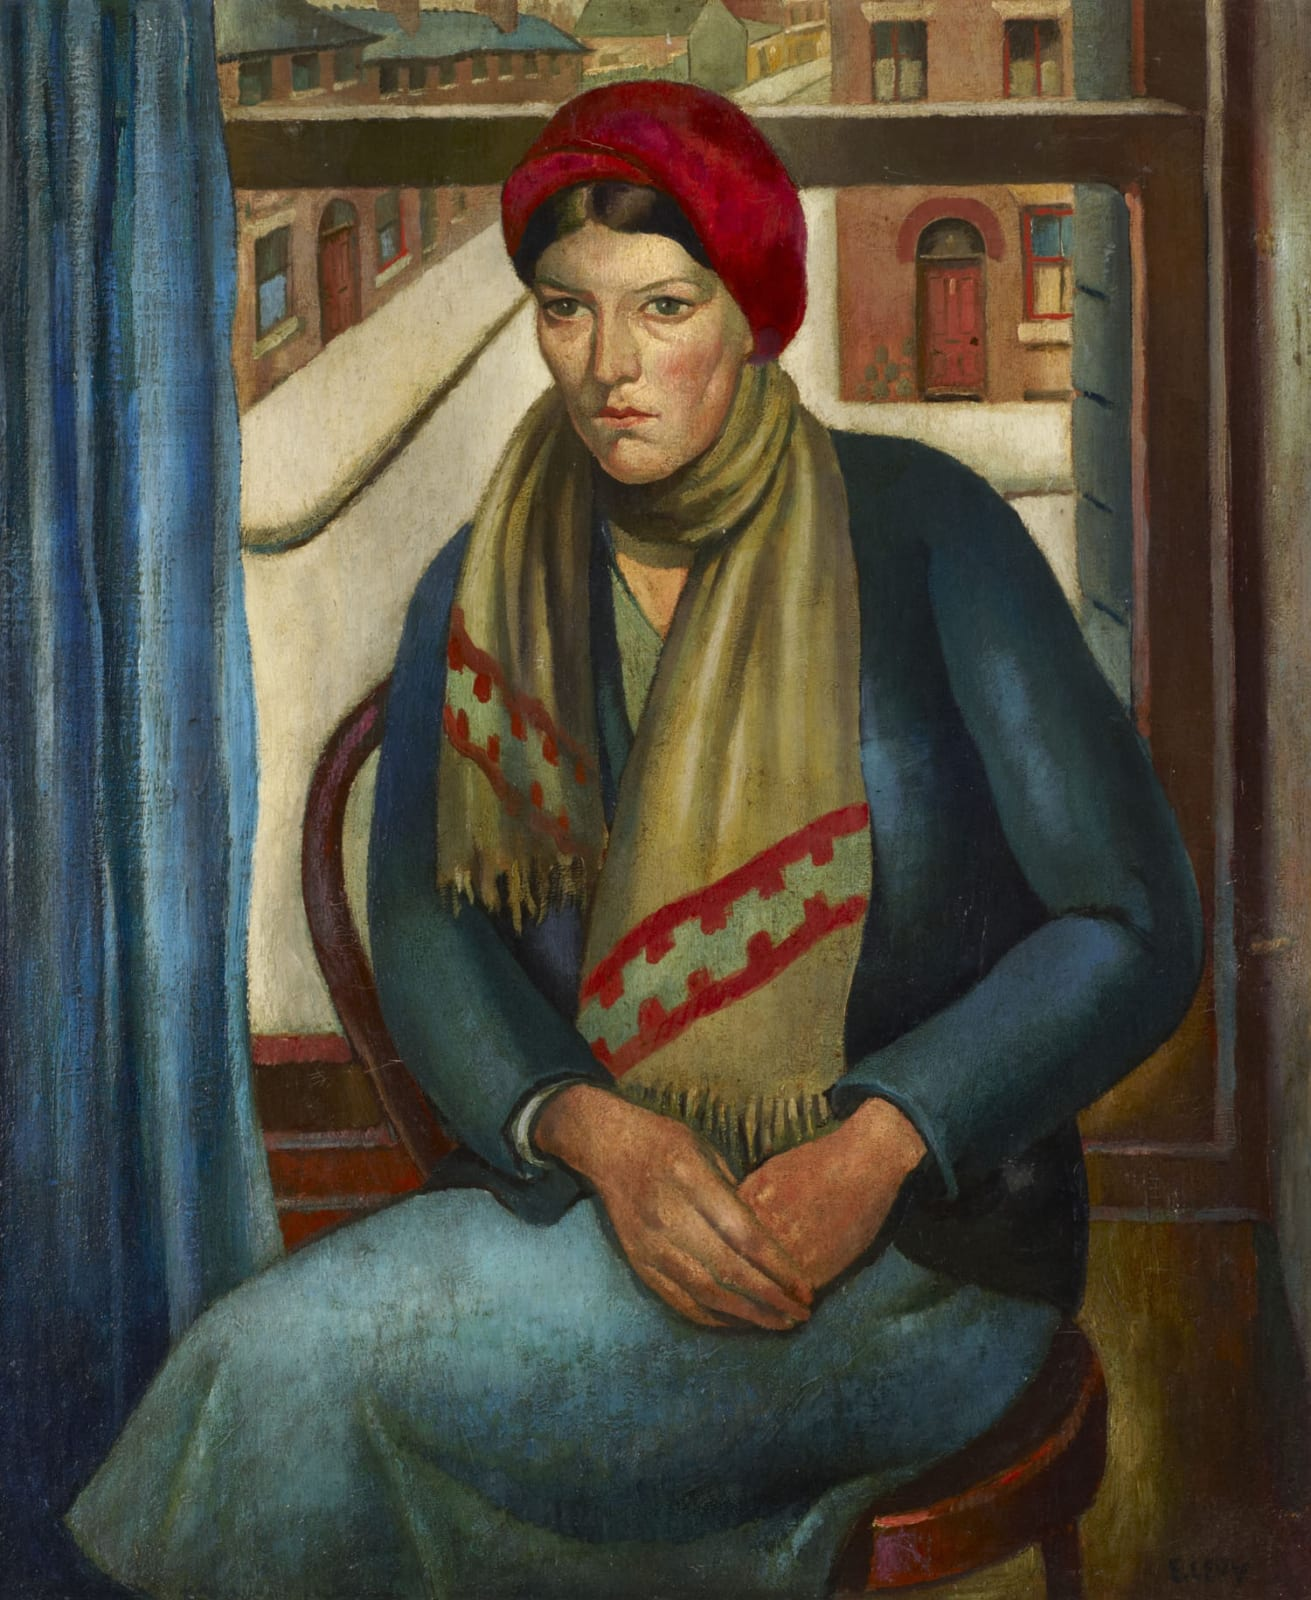 Emmanuel Levy (1900-1986) Girl at a Window 1935 Oil on canvas 75.5 x 62.5 cm Ben Uri Collection © Emmanuel Levy estate